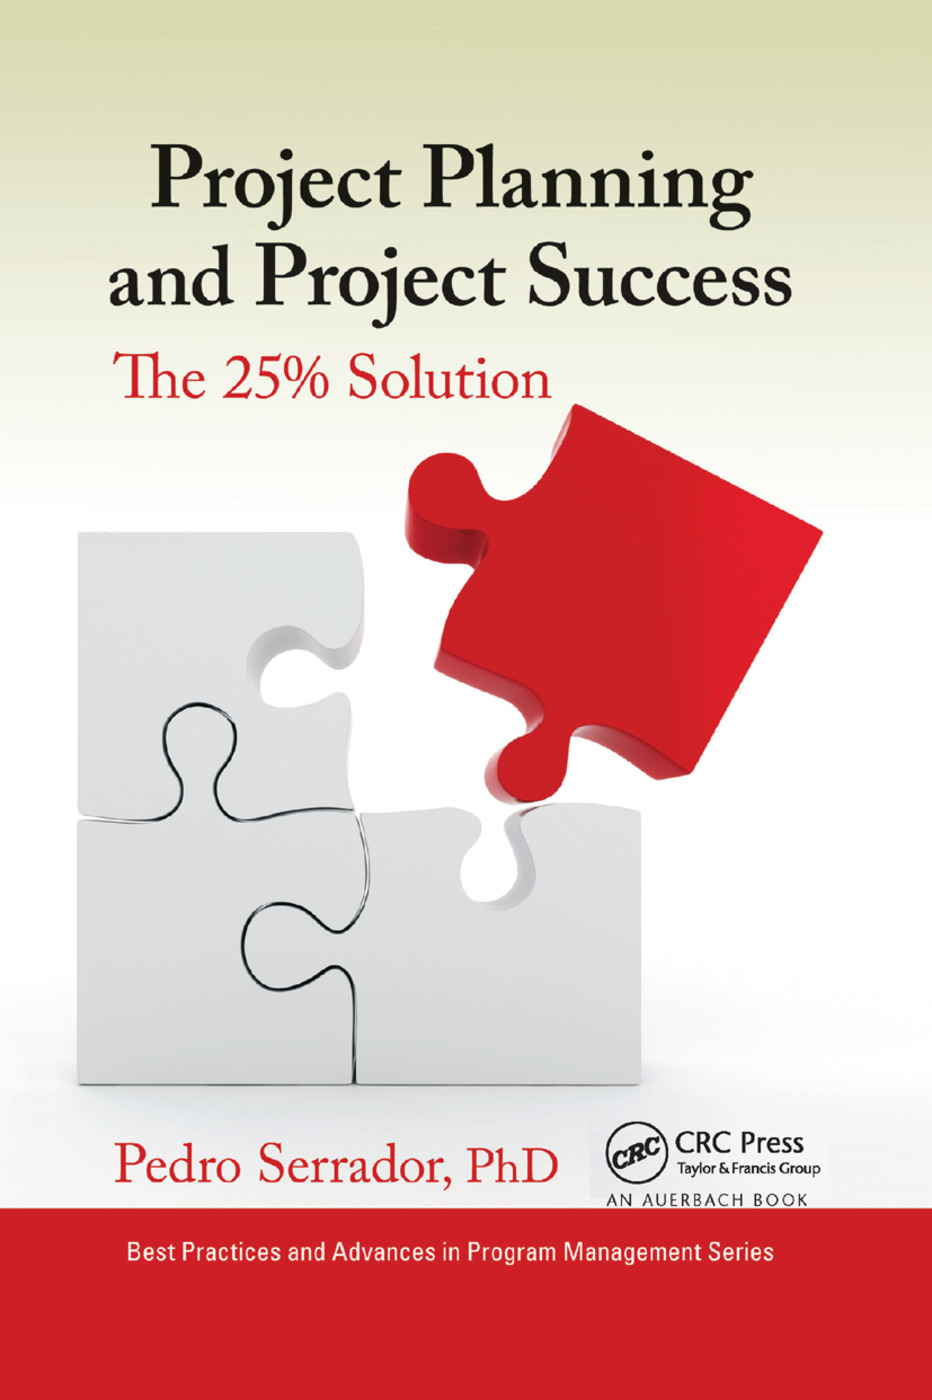 Project Planning and Project Success